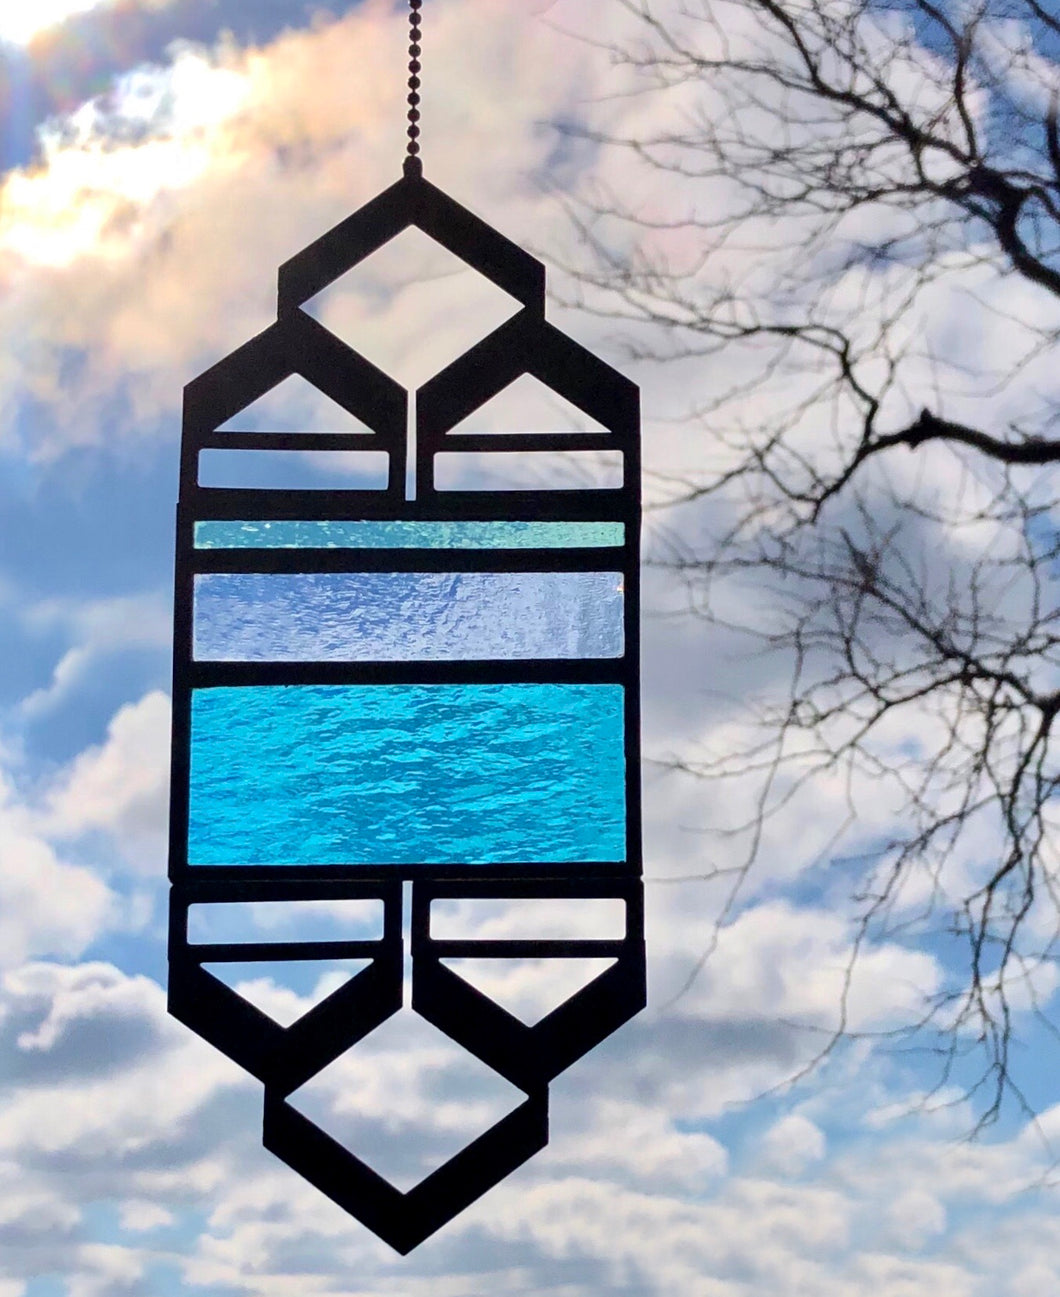 SMALL TURQUOISE/PERIWINKLE ELEVATION SUNCATCHERS